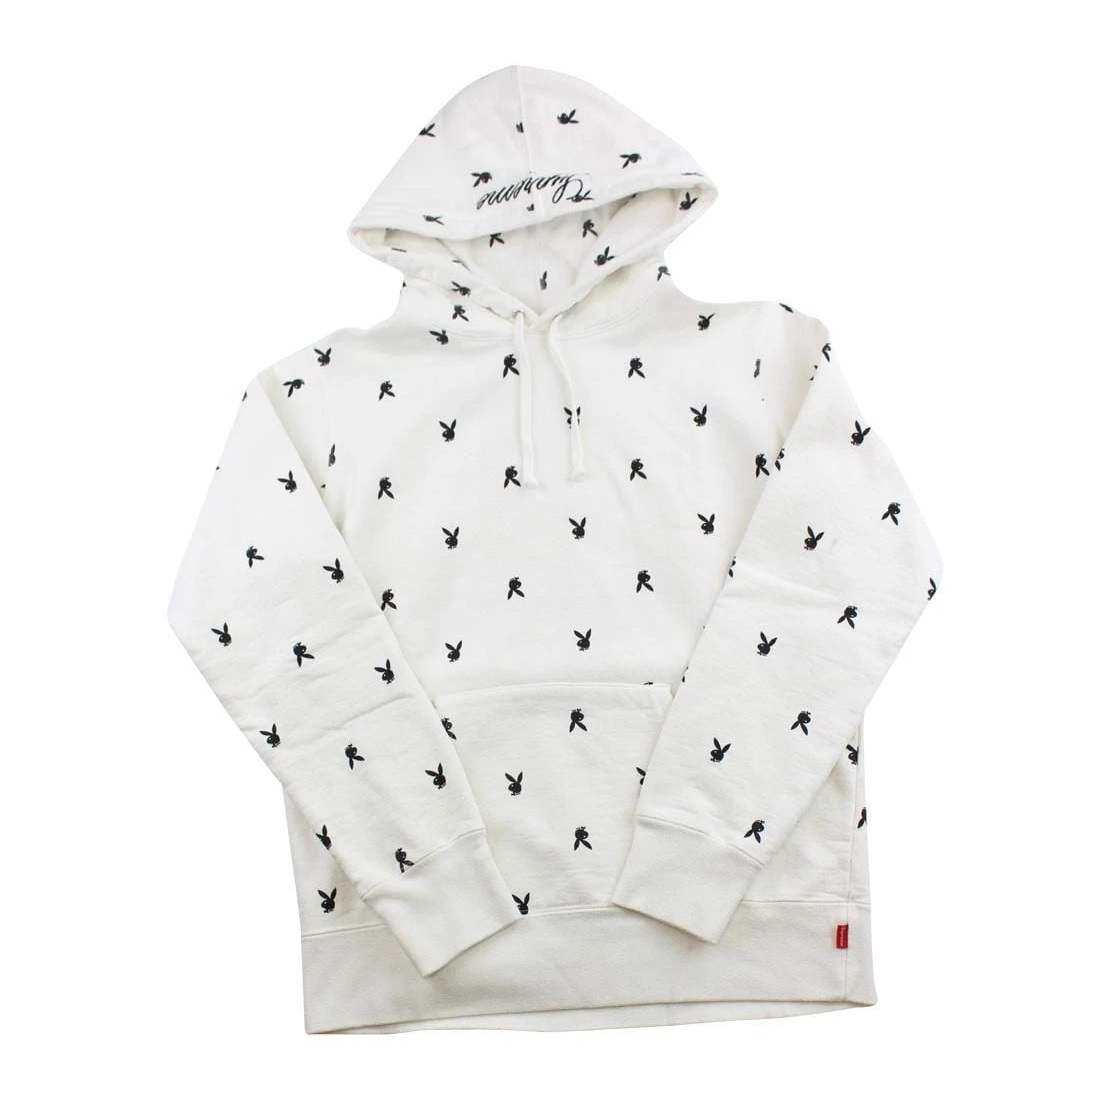 Hermano temblor intervalo  SUPREME X PLAYBOY HOODIE - BLVCKS STREET CULTURE